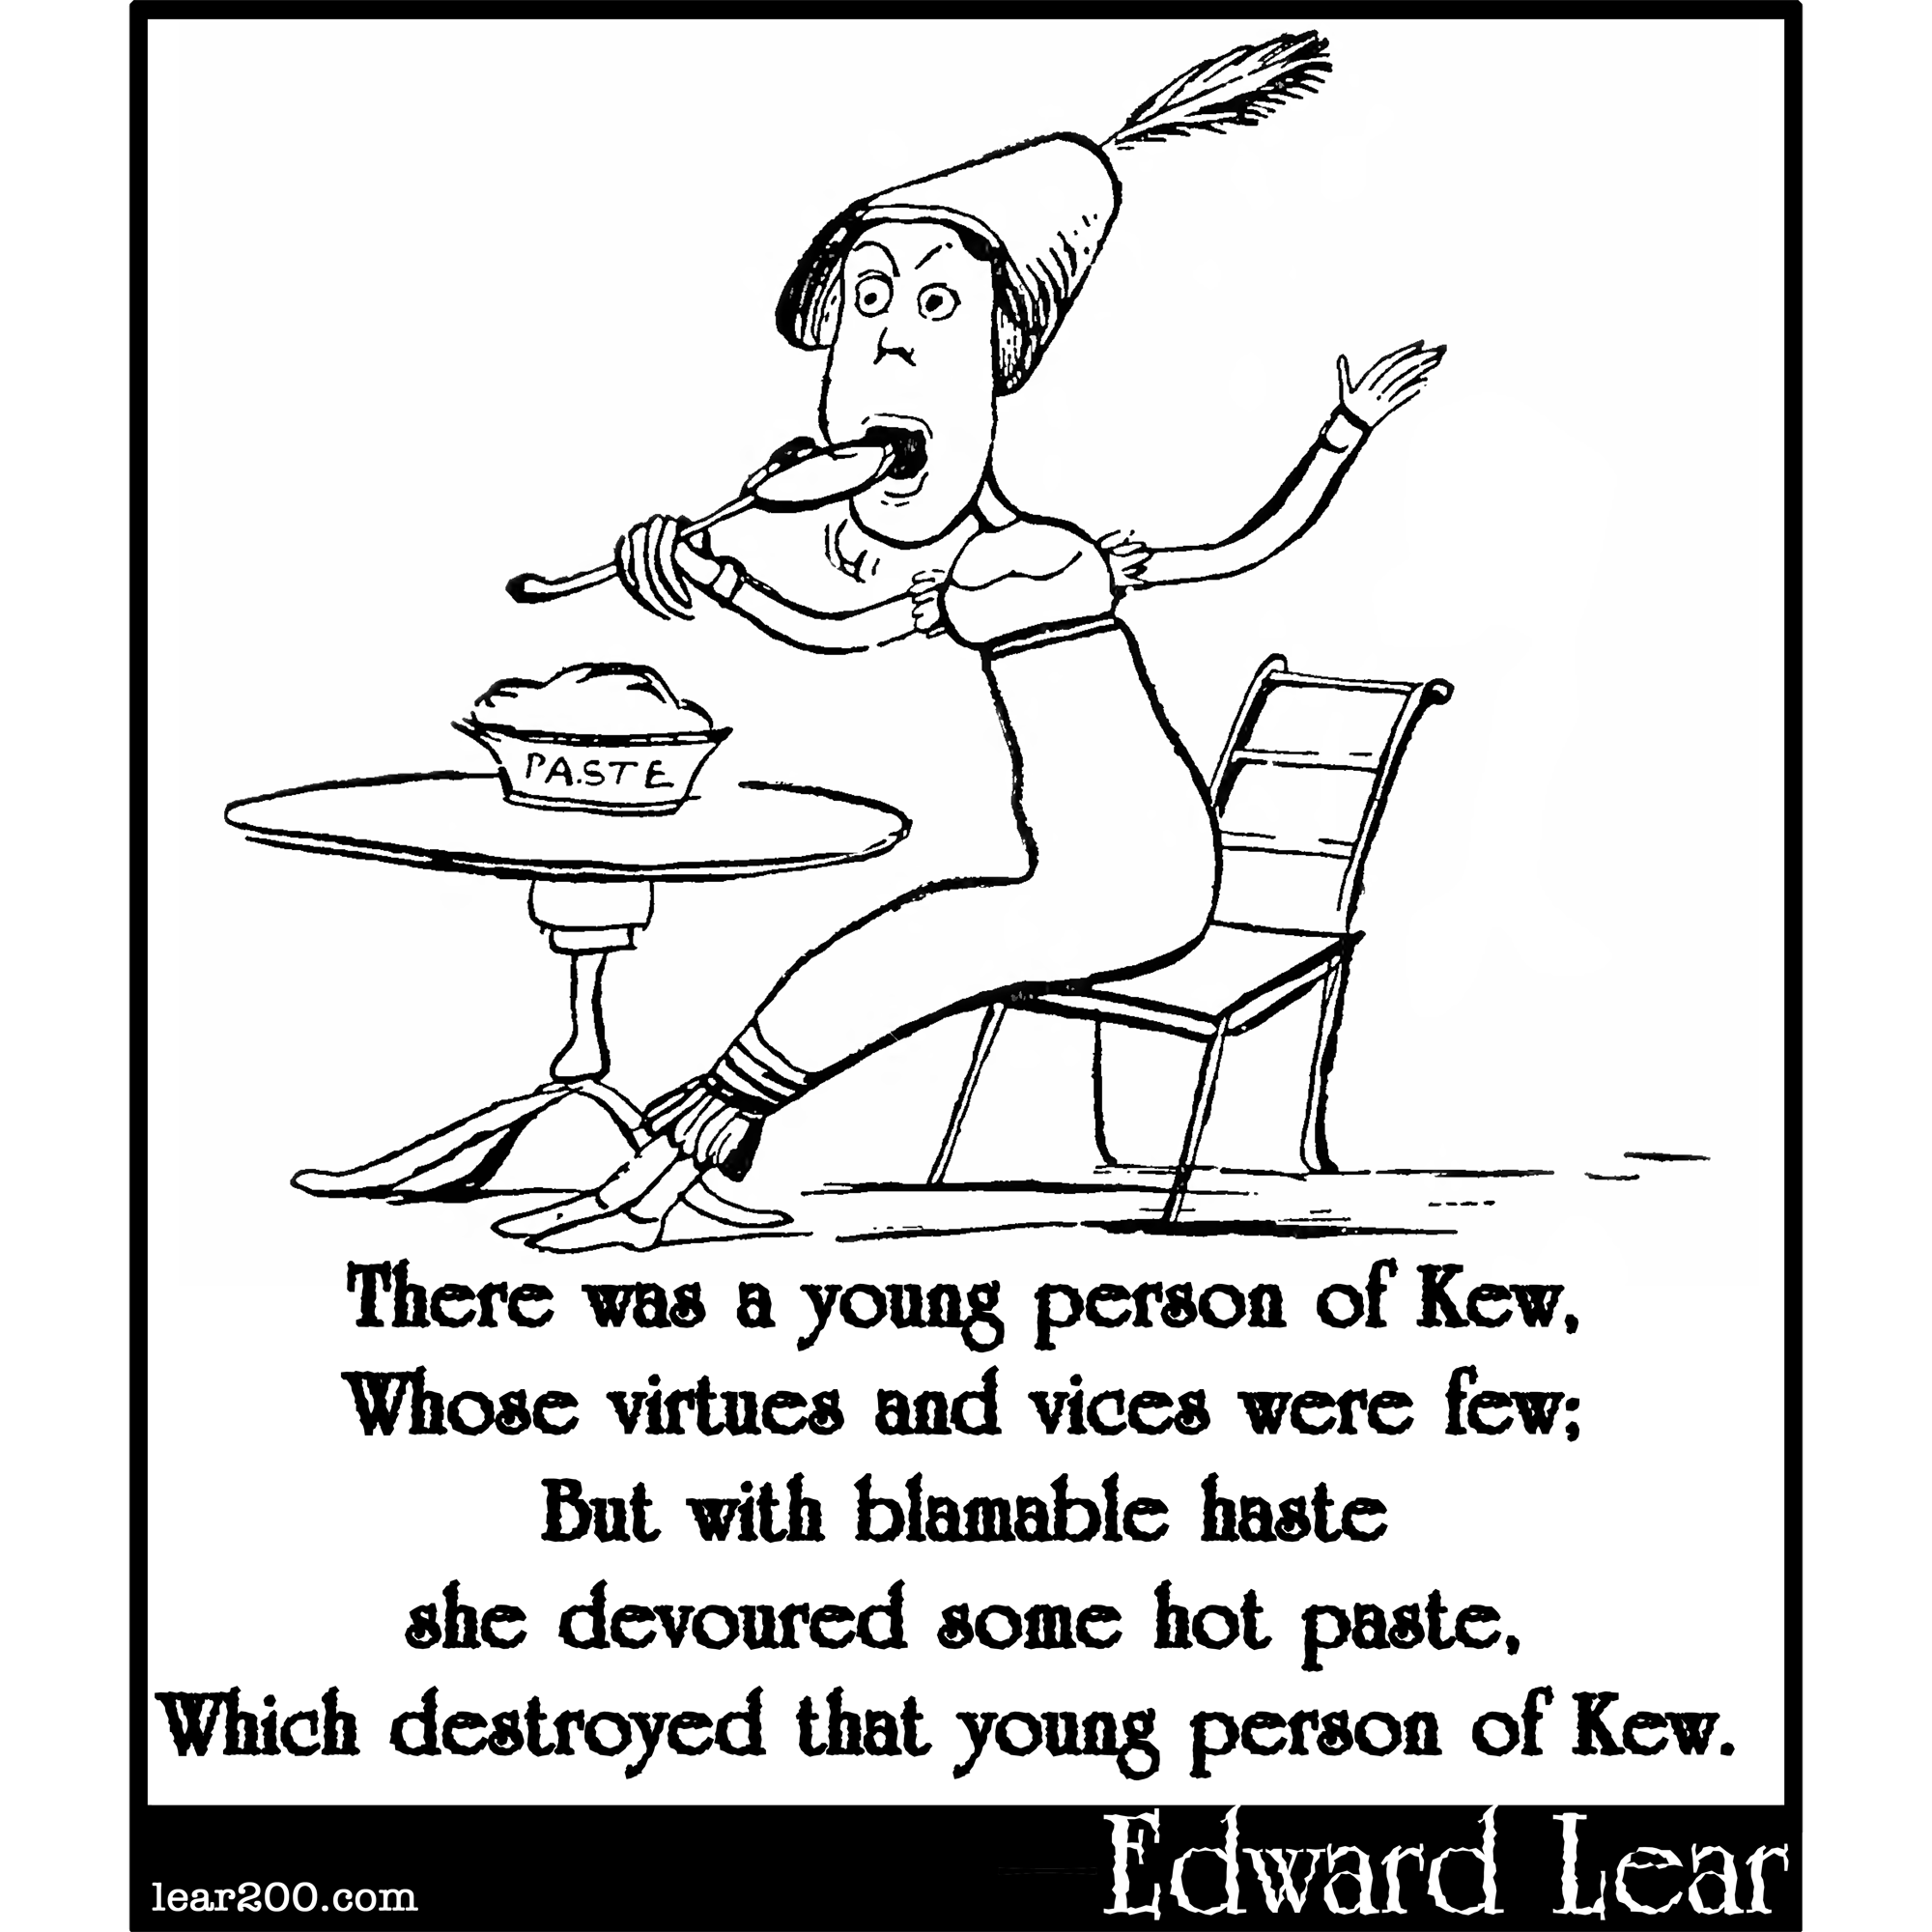 There was a young person of Kew